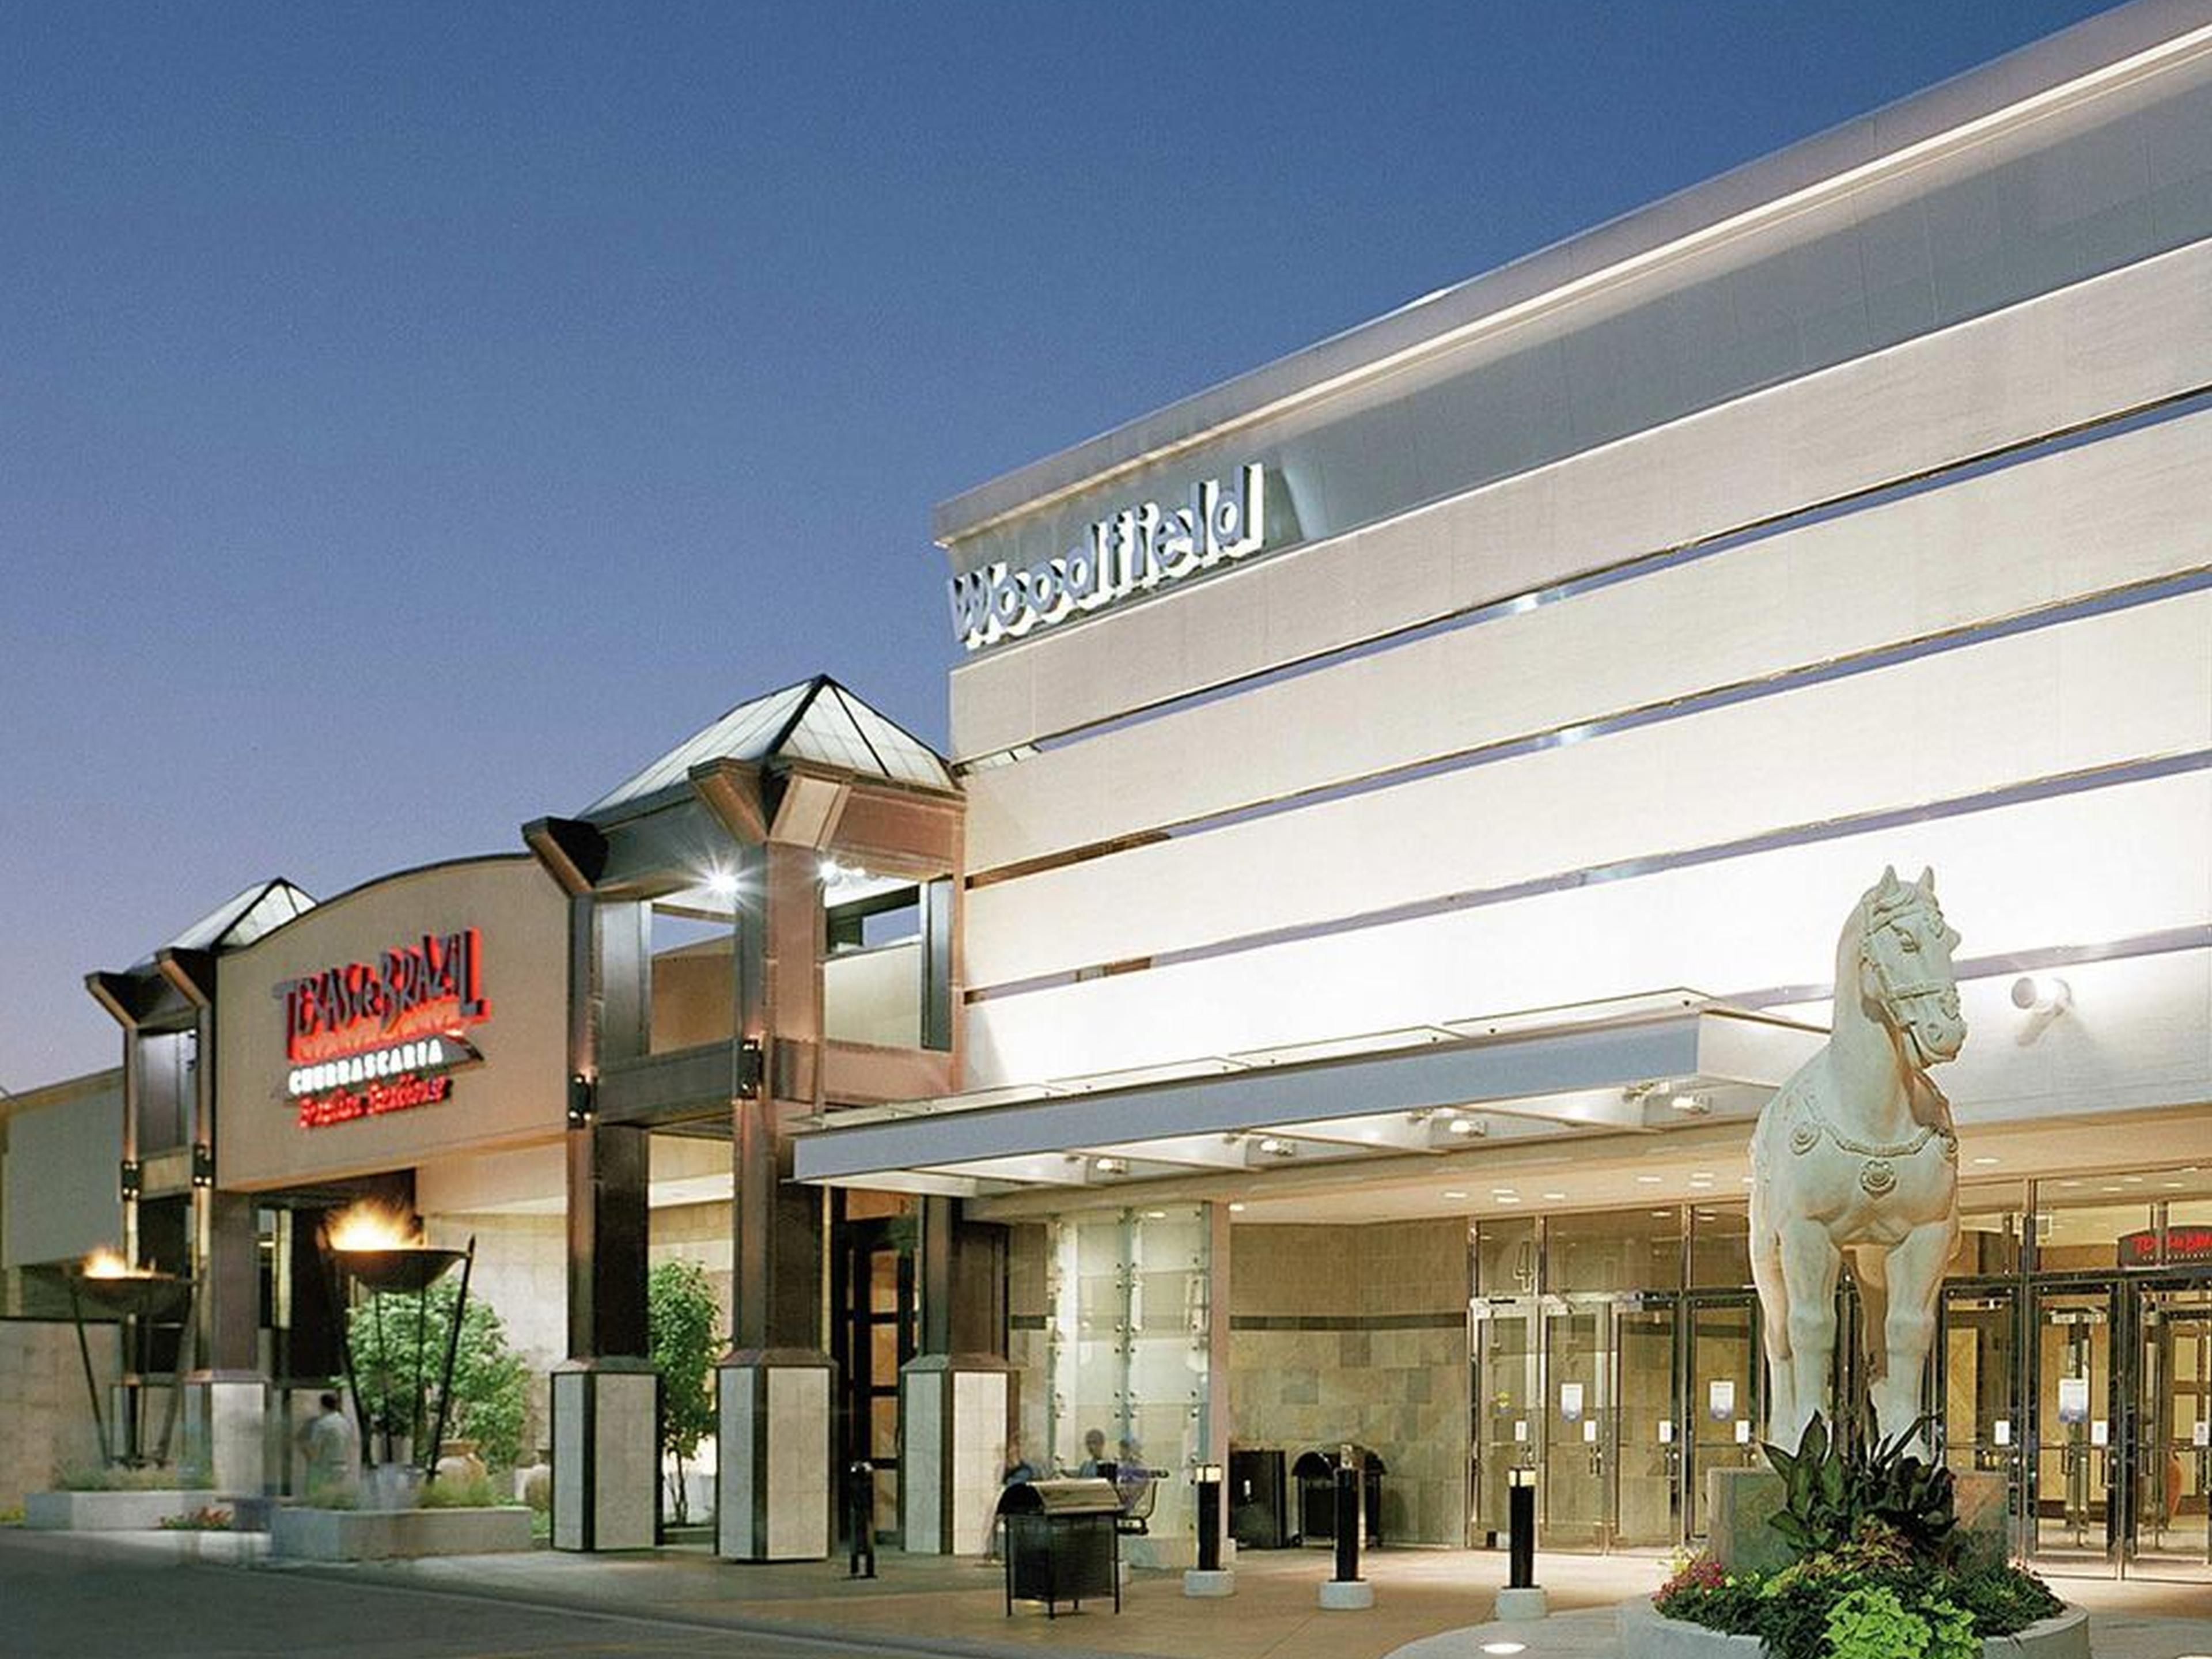 Visit Woodfield Mall & Legoland minutes away in Schaumburg